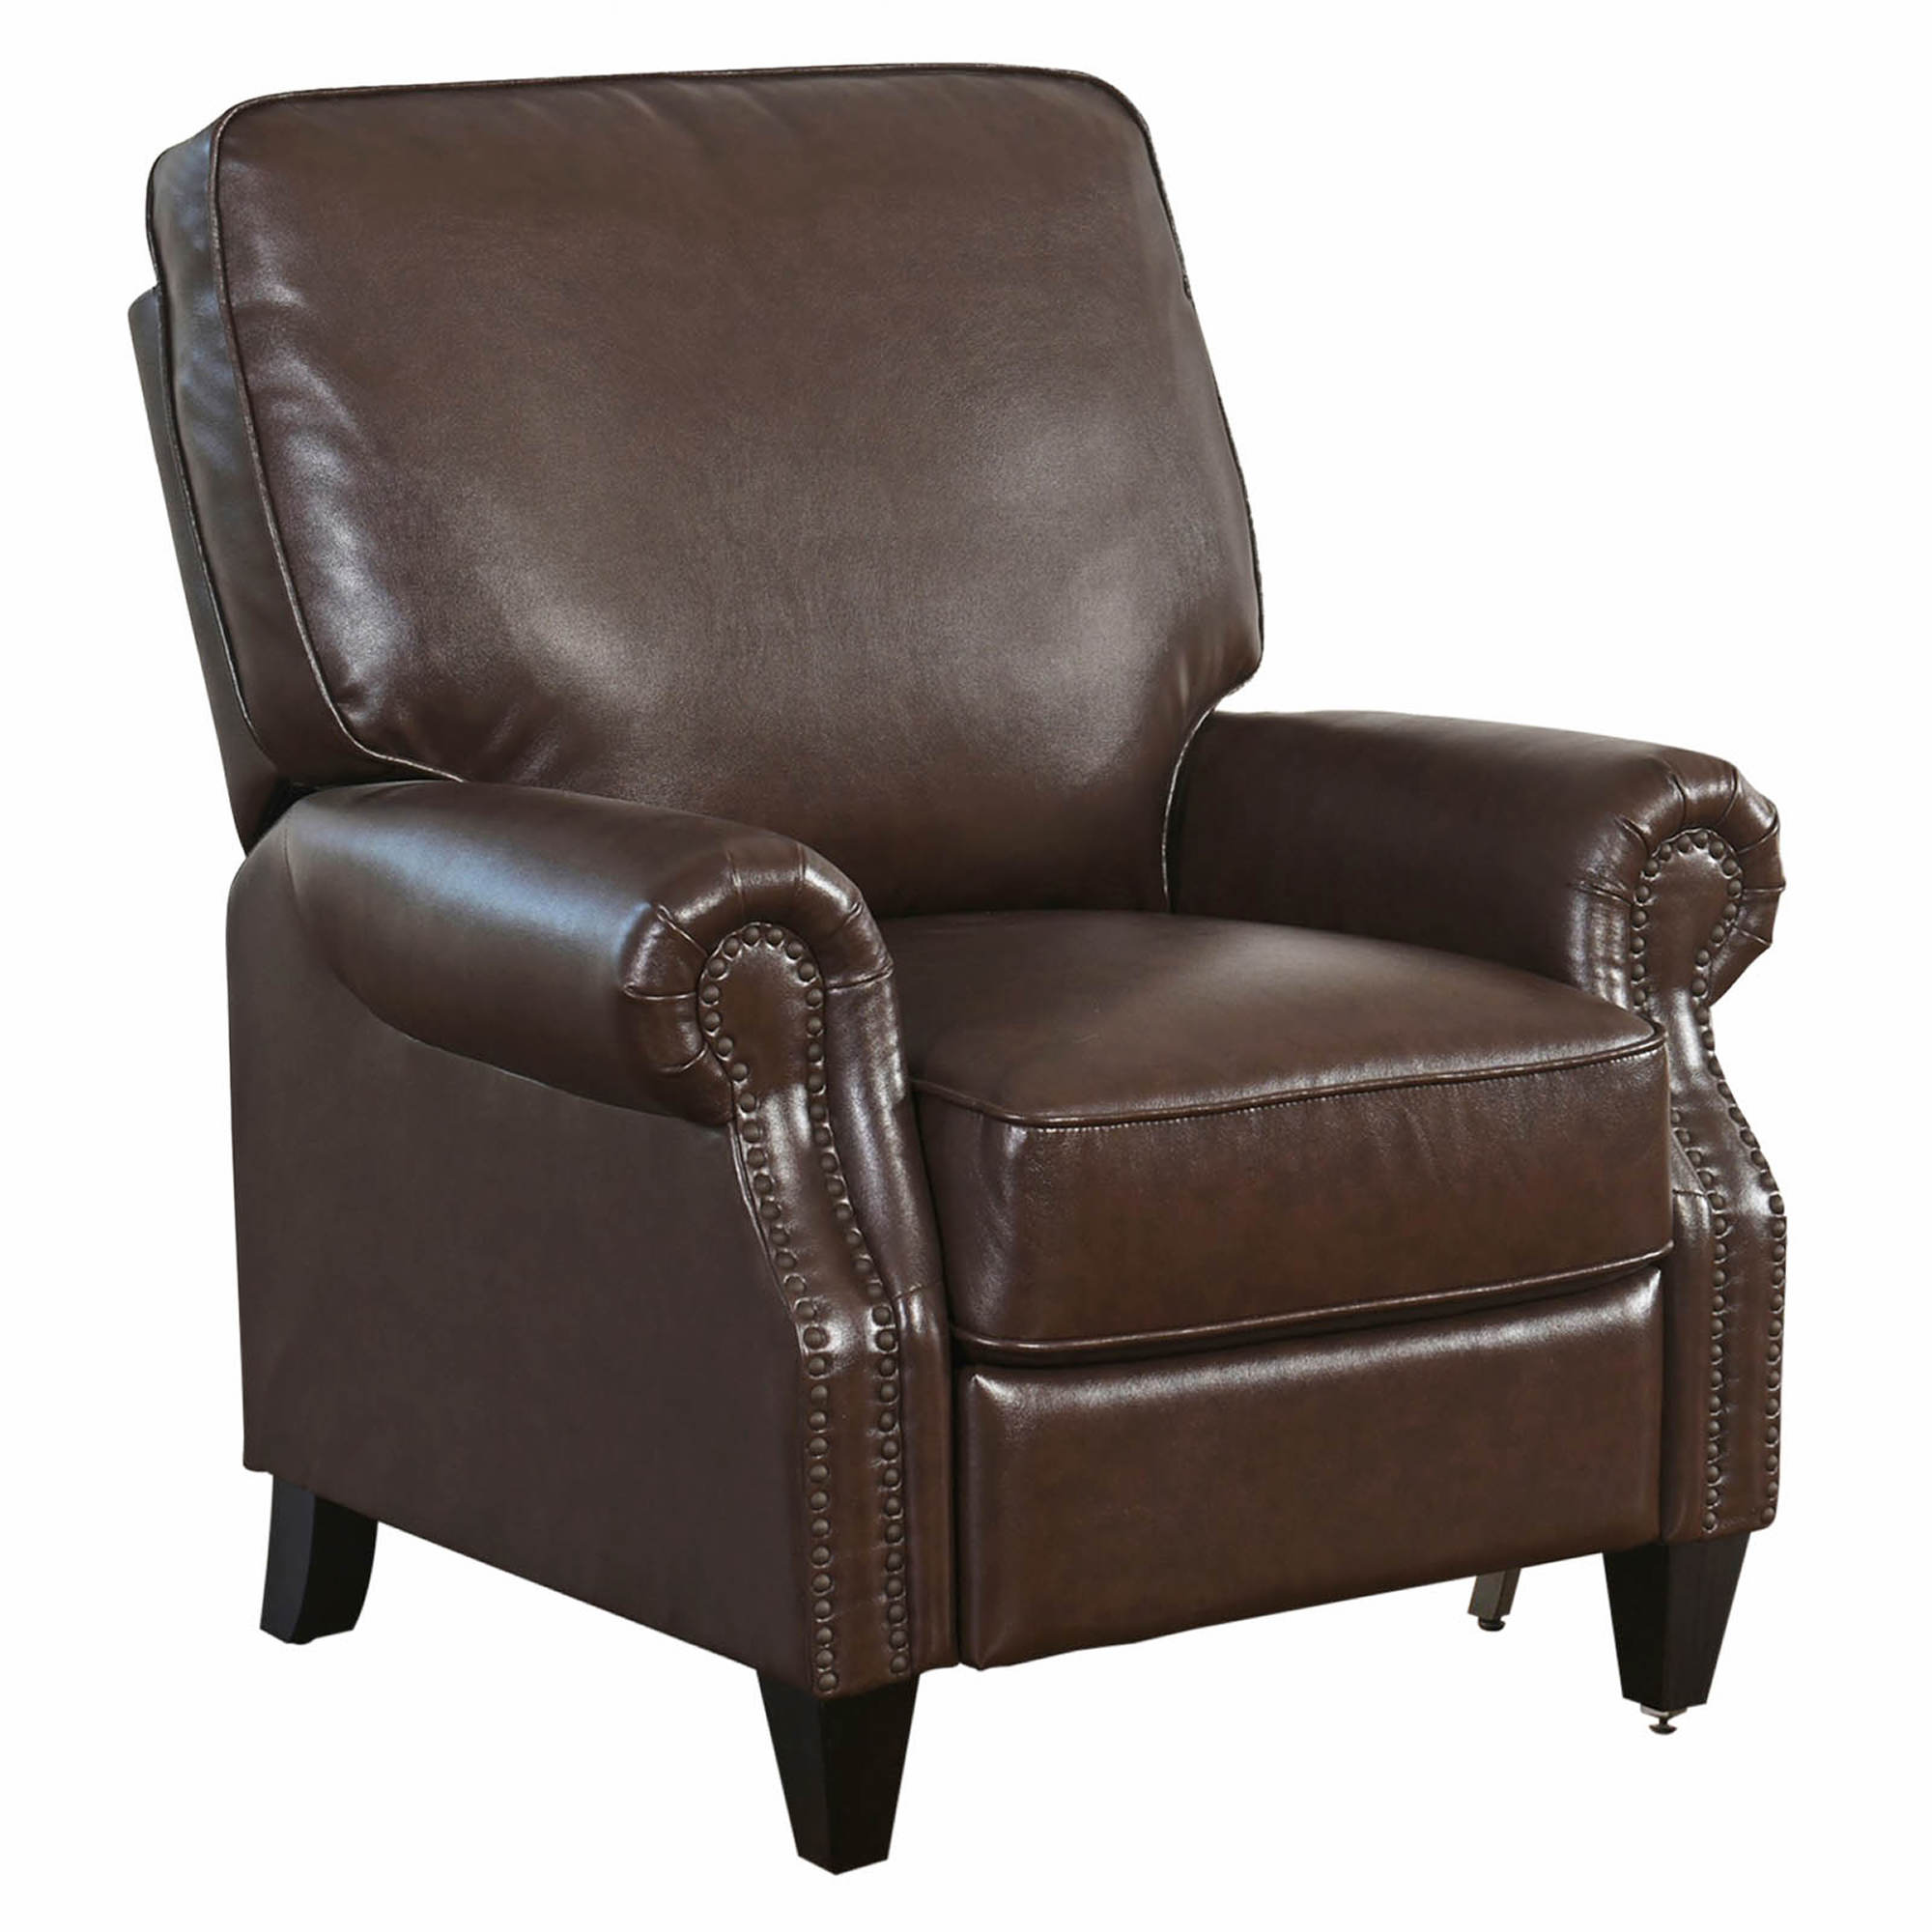 Abbyson living carla bonded leather recliner brown bj for Abbyson living sedona leather chaise recliner